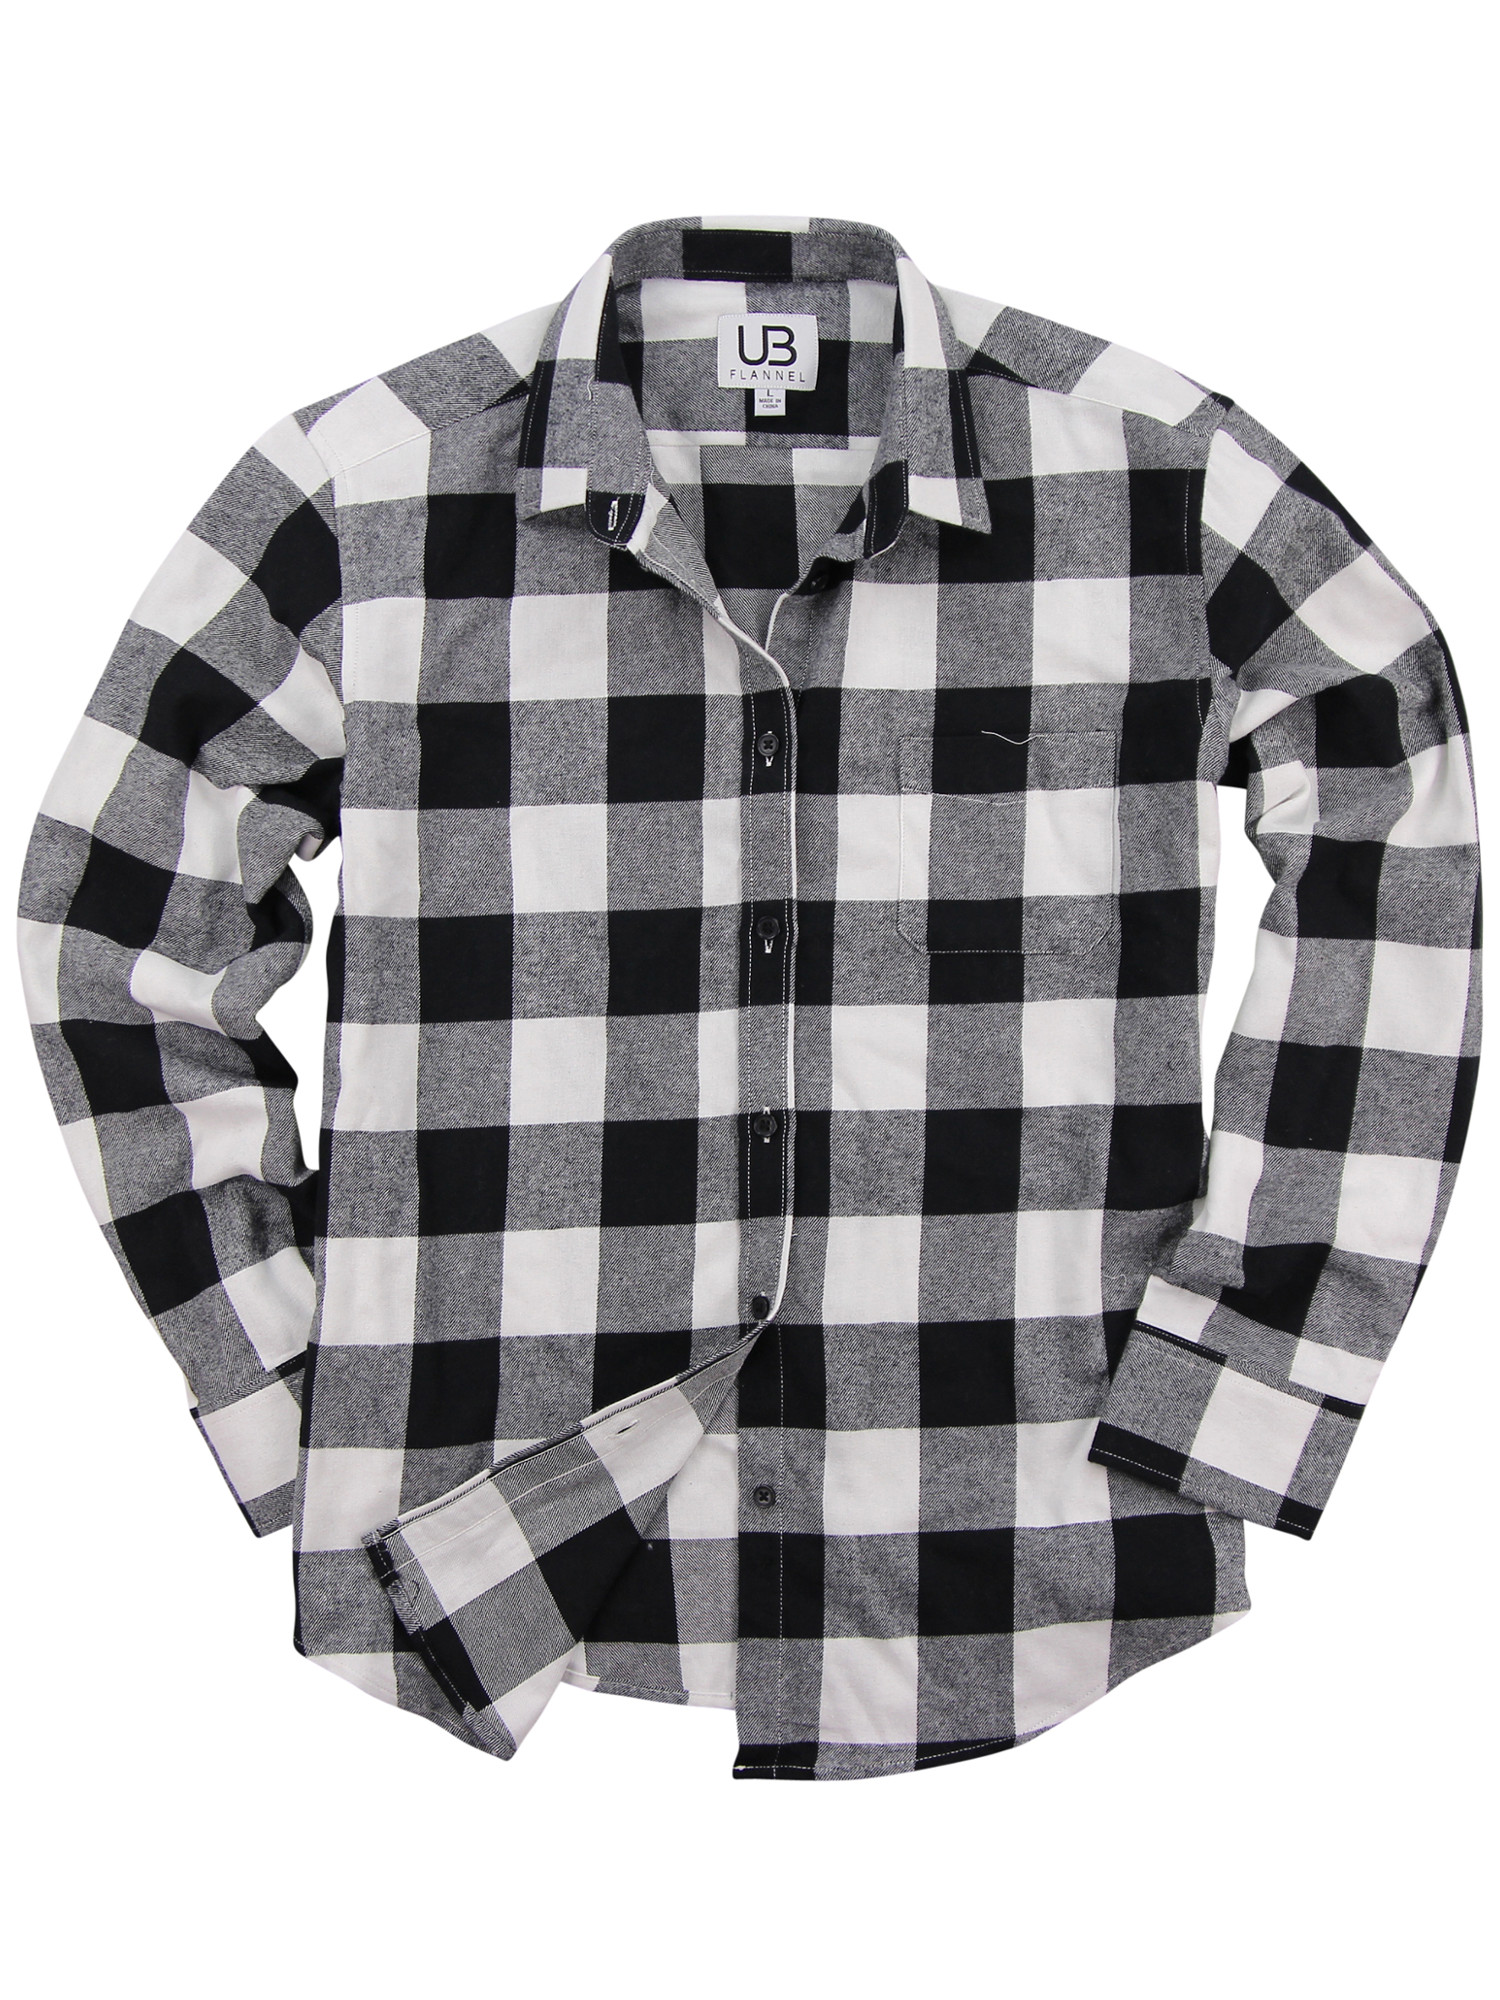 e1bb18ac019ce5 Urban Boundaries - Women's Long Sleeve Flannel Shirt w/Point Collar (Black/ White, X-Small) - Walmart.com